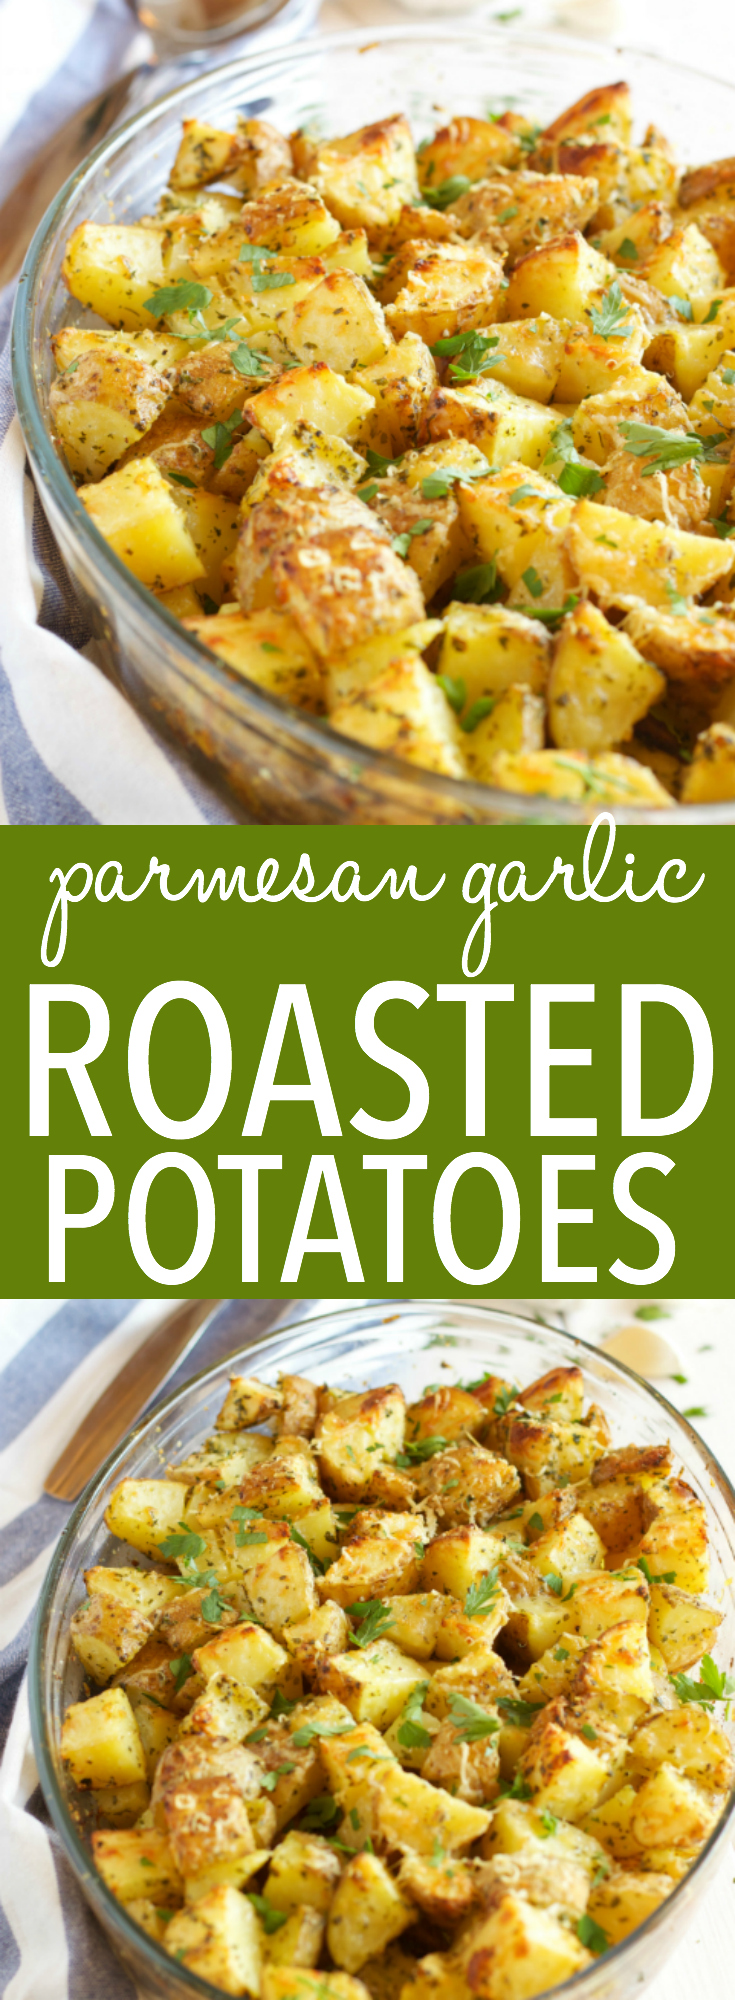 These Garlic Parmesan Oven Roasted Potatoes are an easy to make side dish made with only a few simple ingredients, perfect for the holidays or any time of year!! Recipe from thebusybaker.ca #holidaysidedish #holidayrecipe #thanksgiving #christmas via @busybakerblog